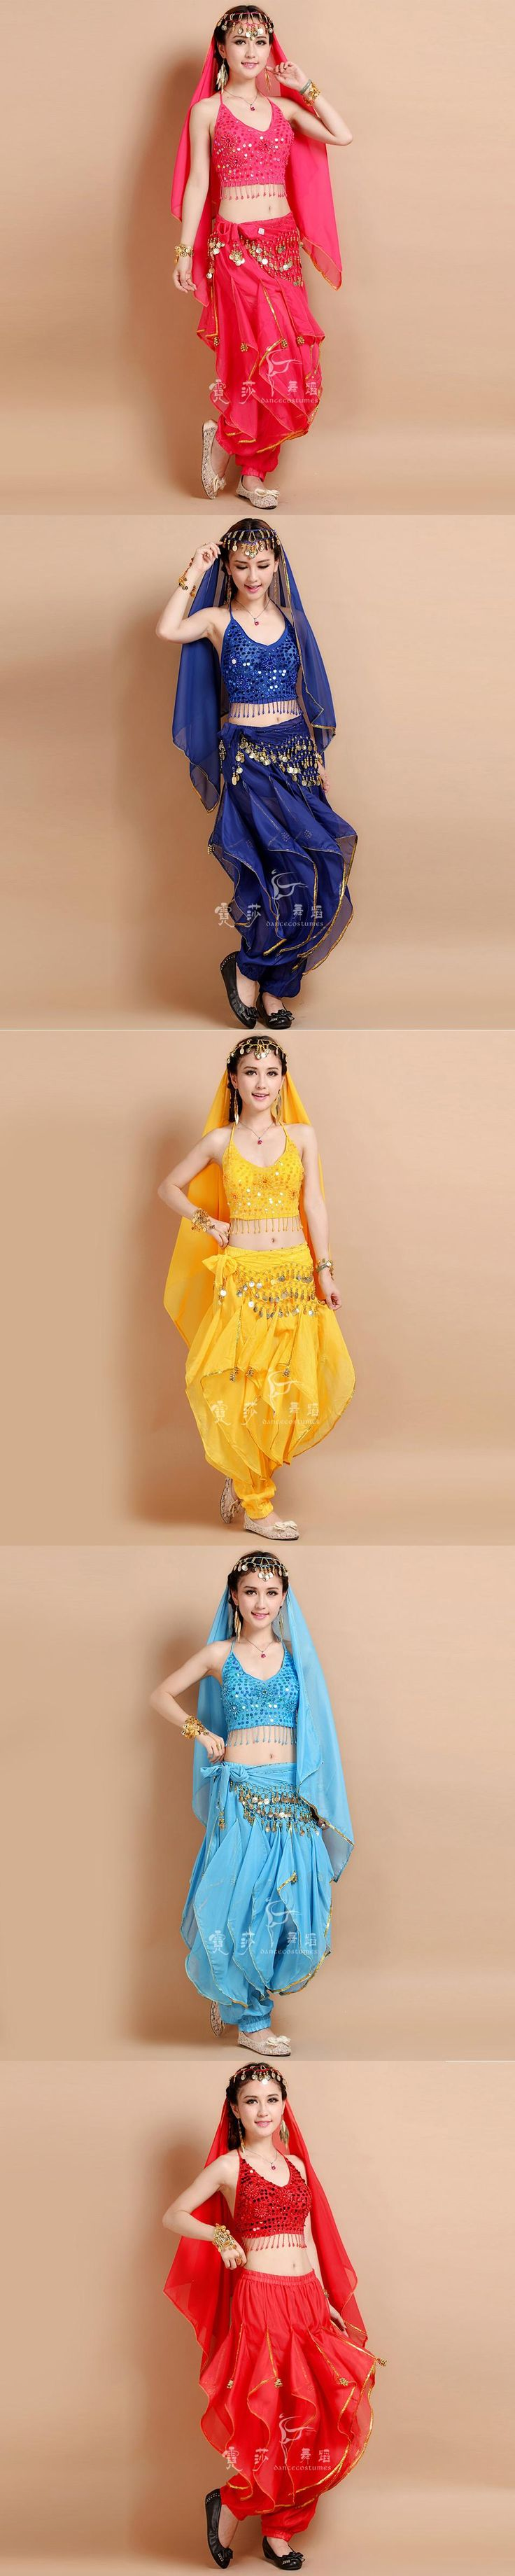 2017 new 6 colors Belly Dance Costume Bollywood Costume Indian Dress Bellydance Dress Womens Belly Dancing Costume Sets